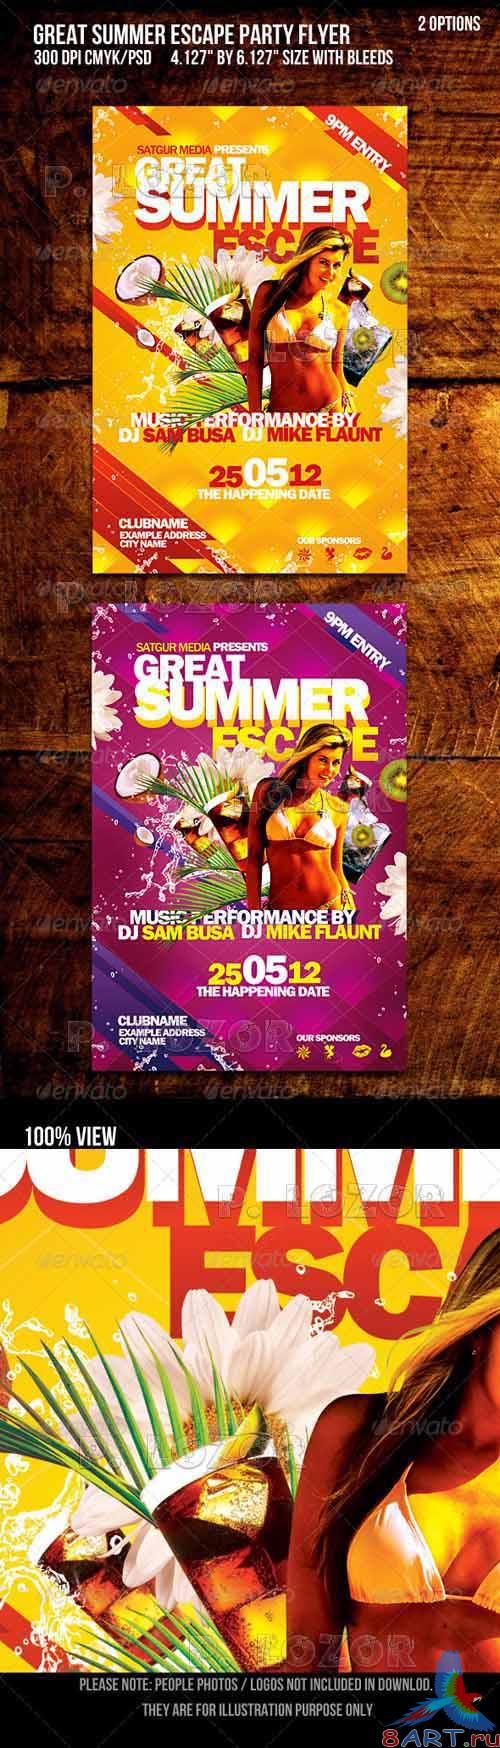 Great Summer Escape Beach summer Party Flyer